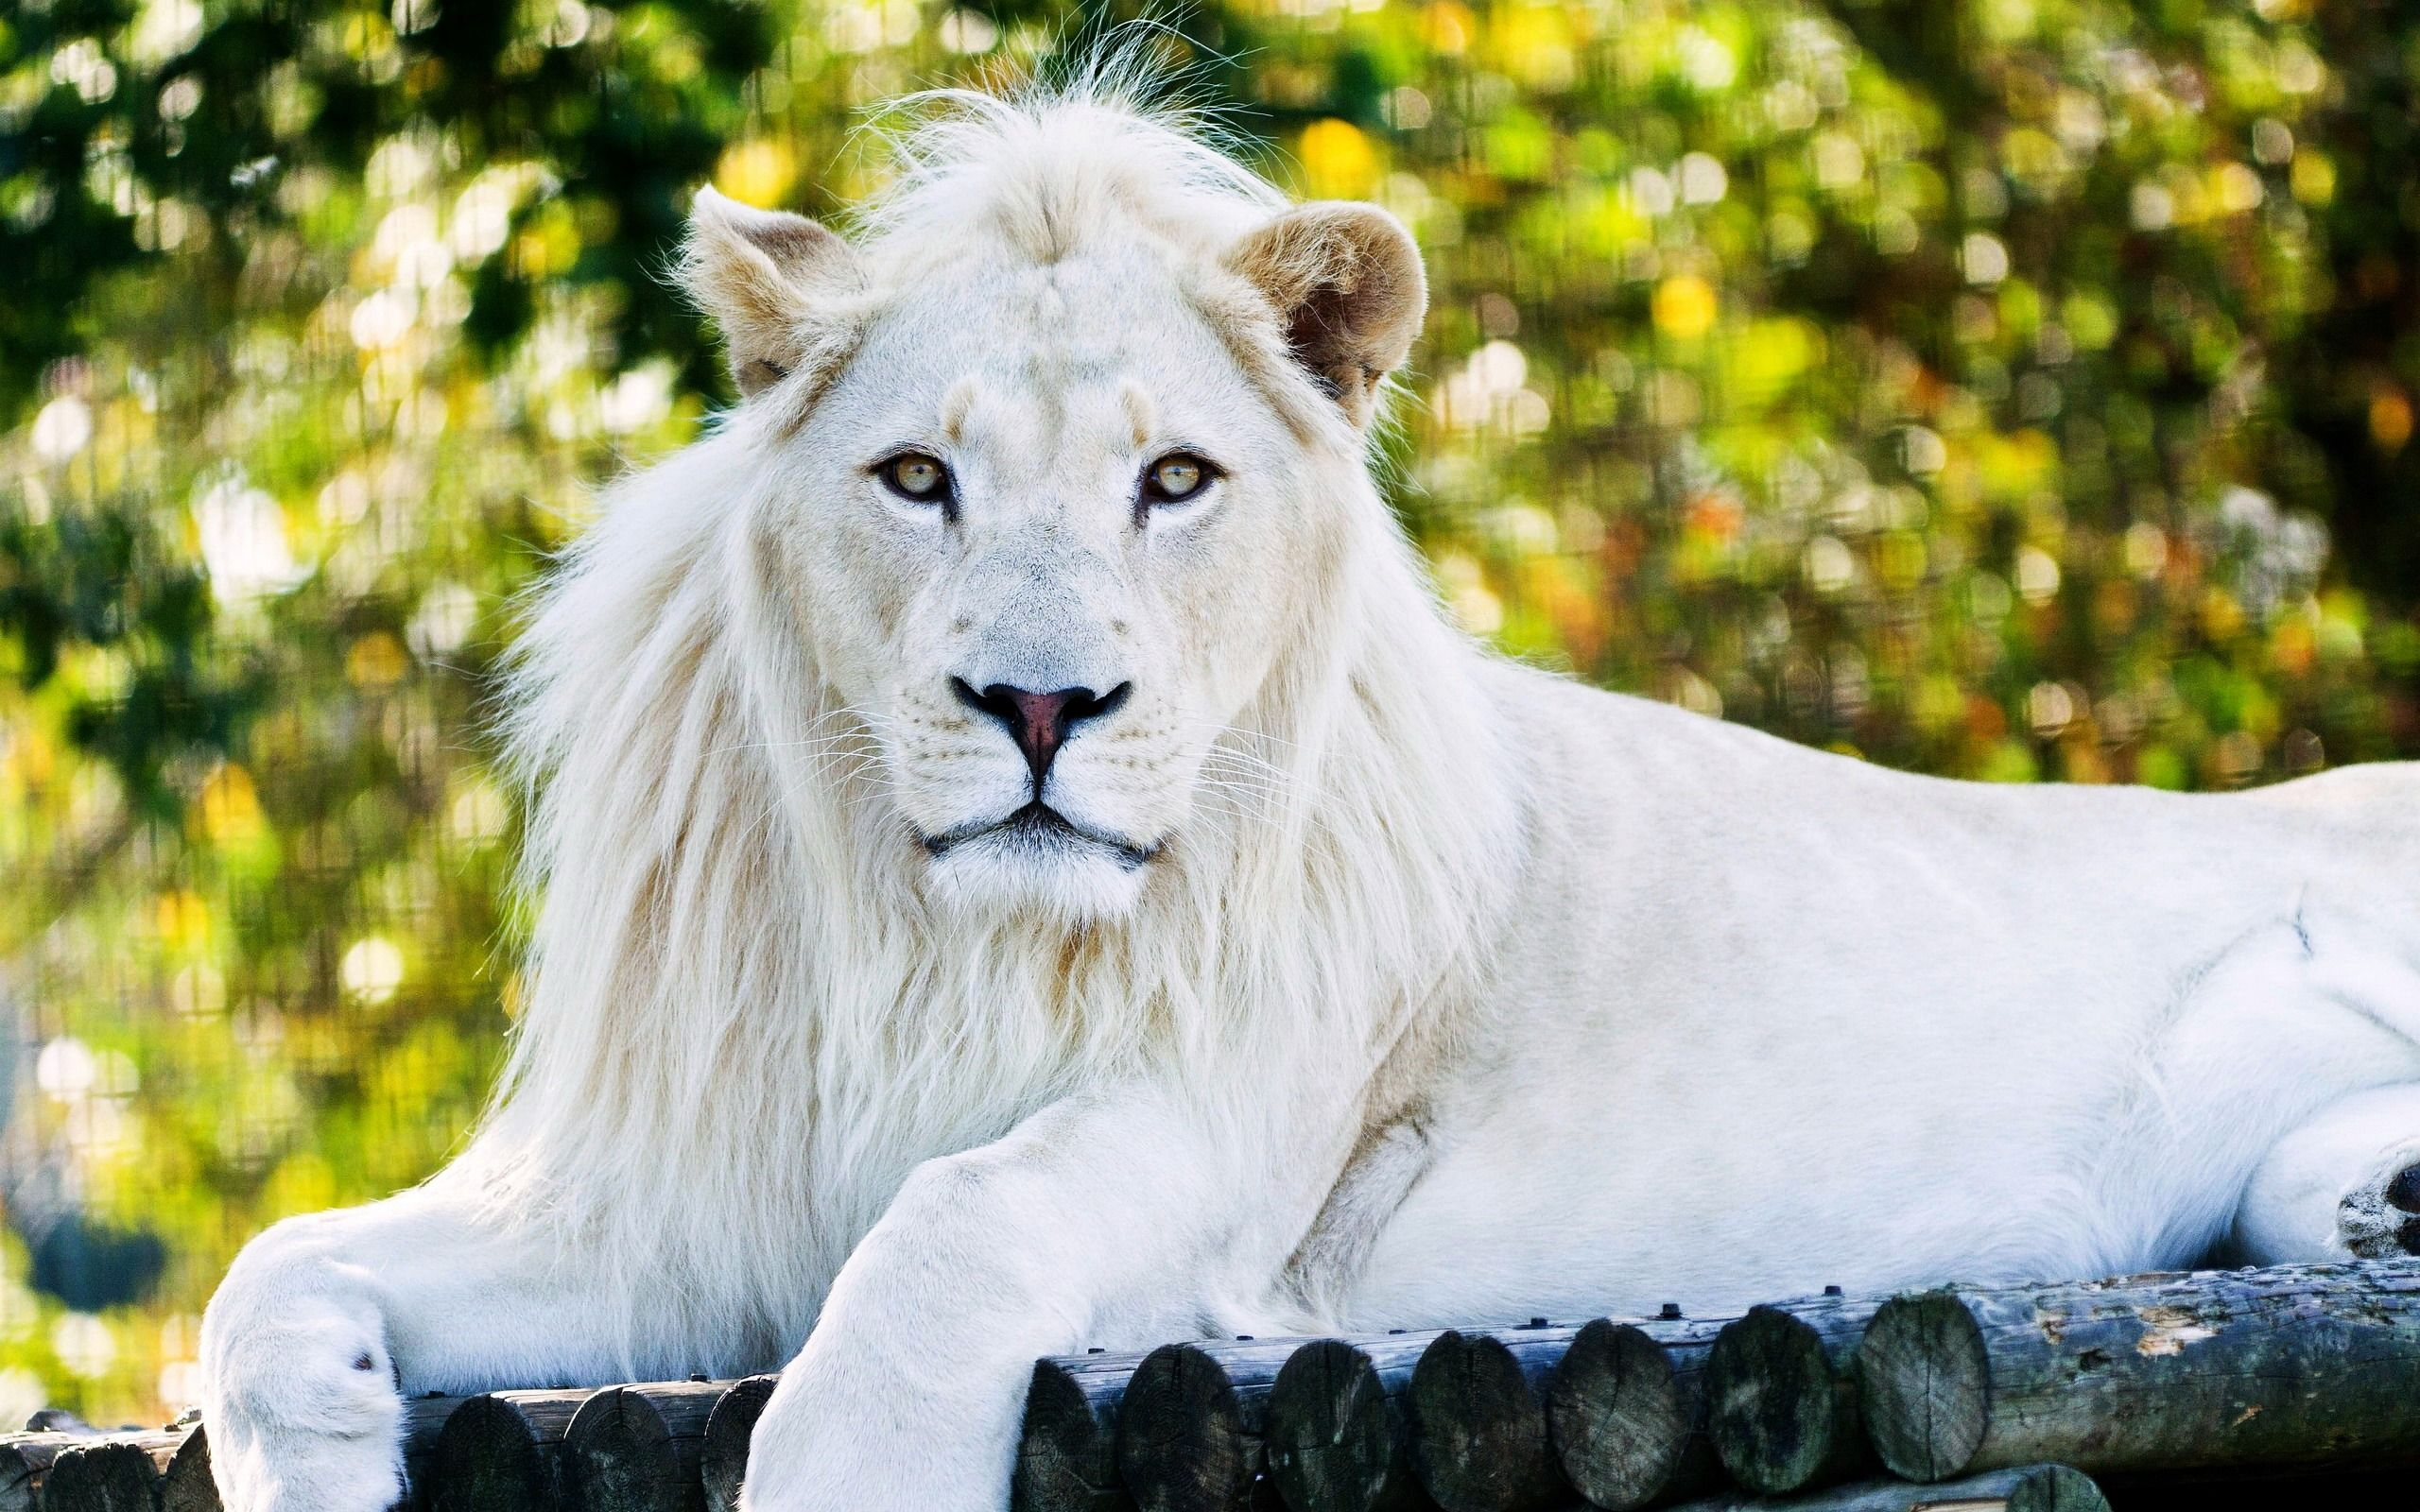 2560x1600 White Lion Wallpaper Background Image View Download Comment And Rate Wallpaper Abyss White Lion Images Lion Wallpaper White Lion